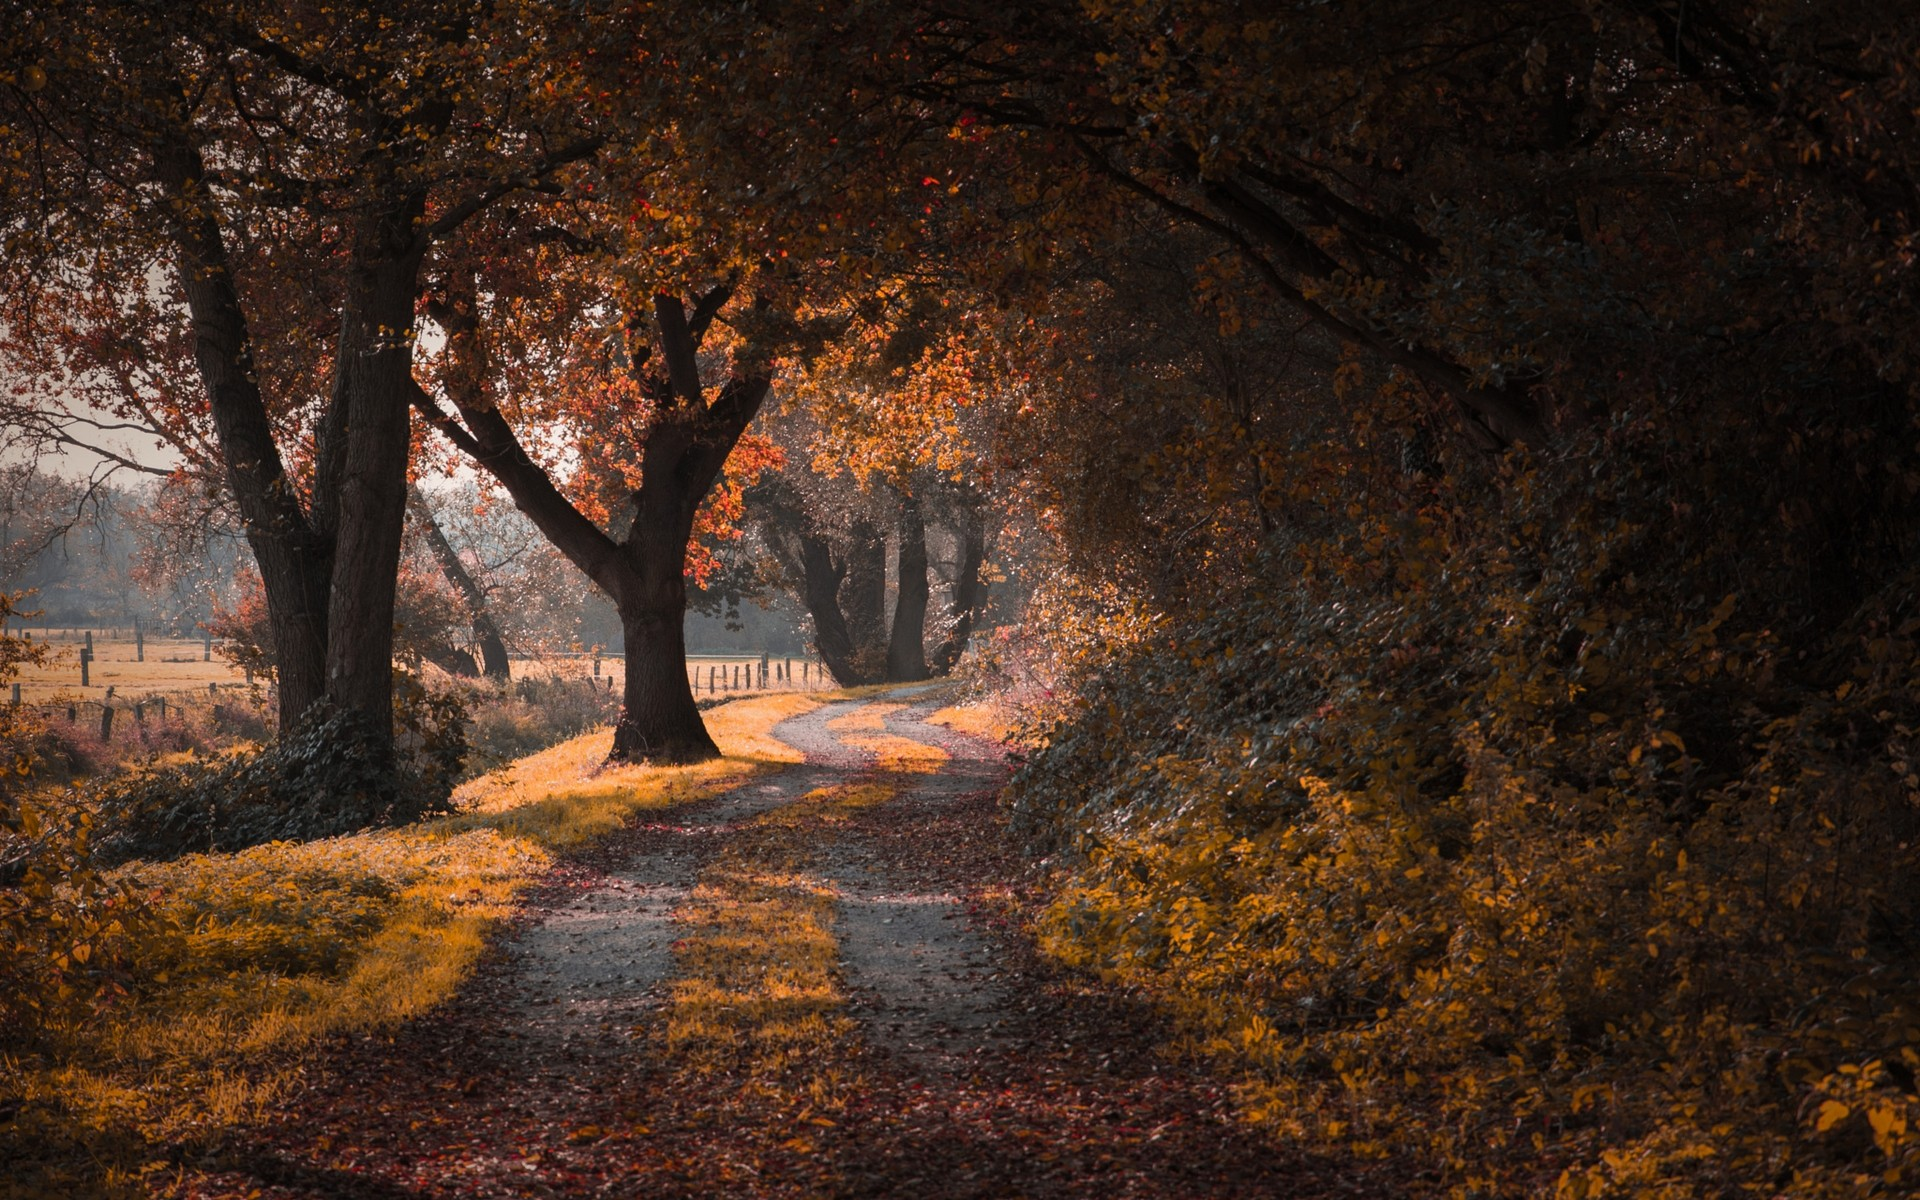 Fall Paintings Wallpaper Landscape Nature Road Fall Trees Leaves Shrubs